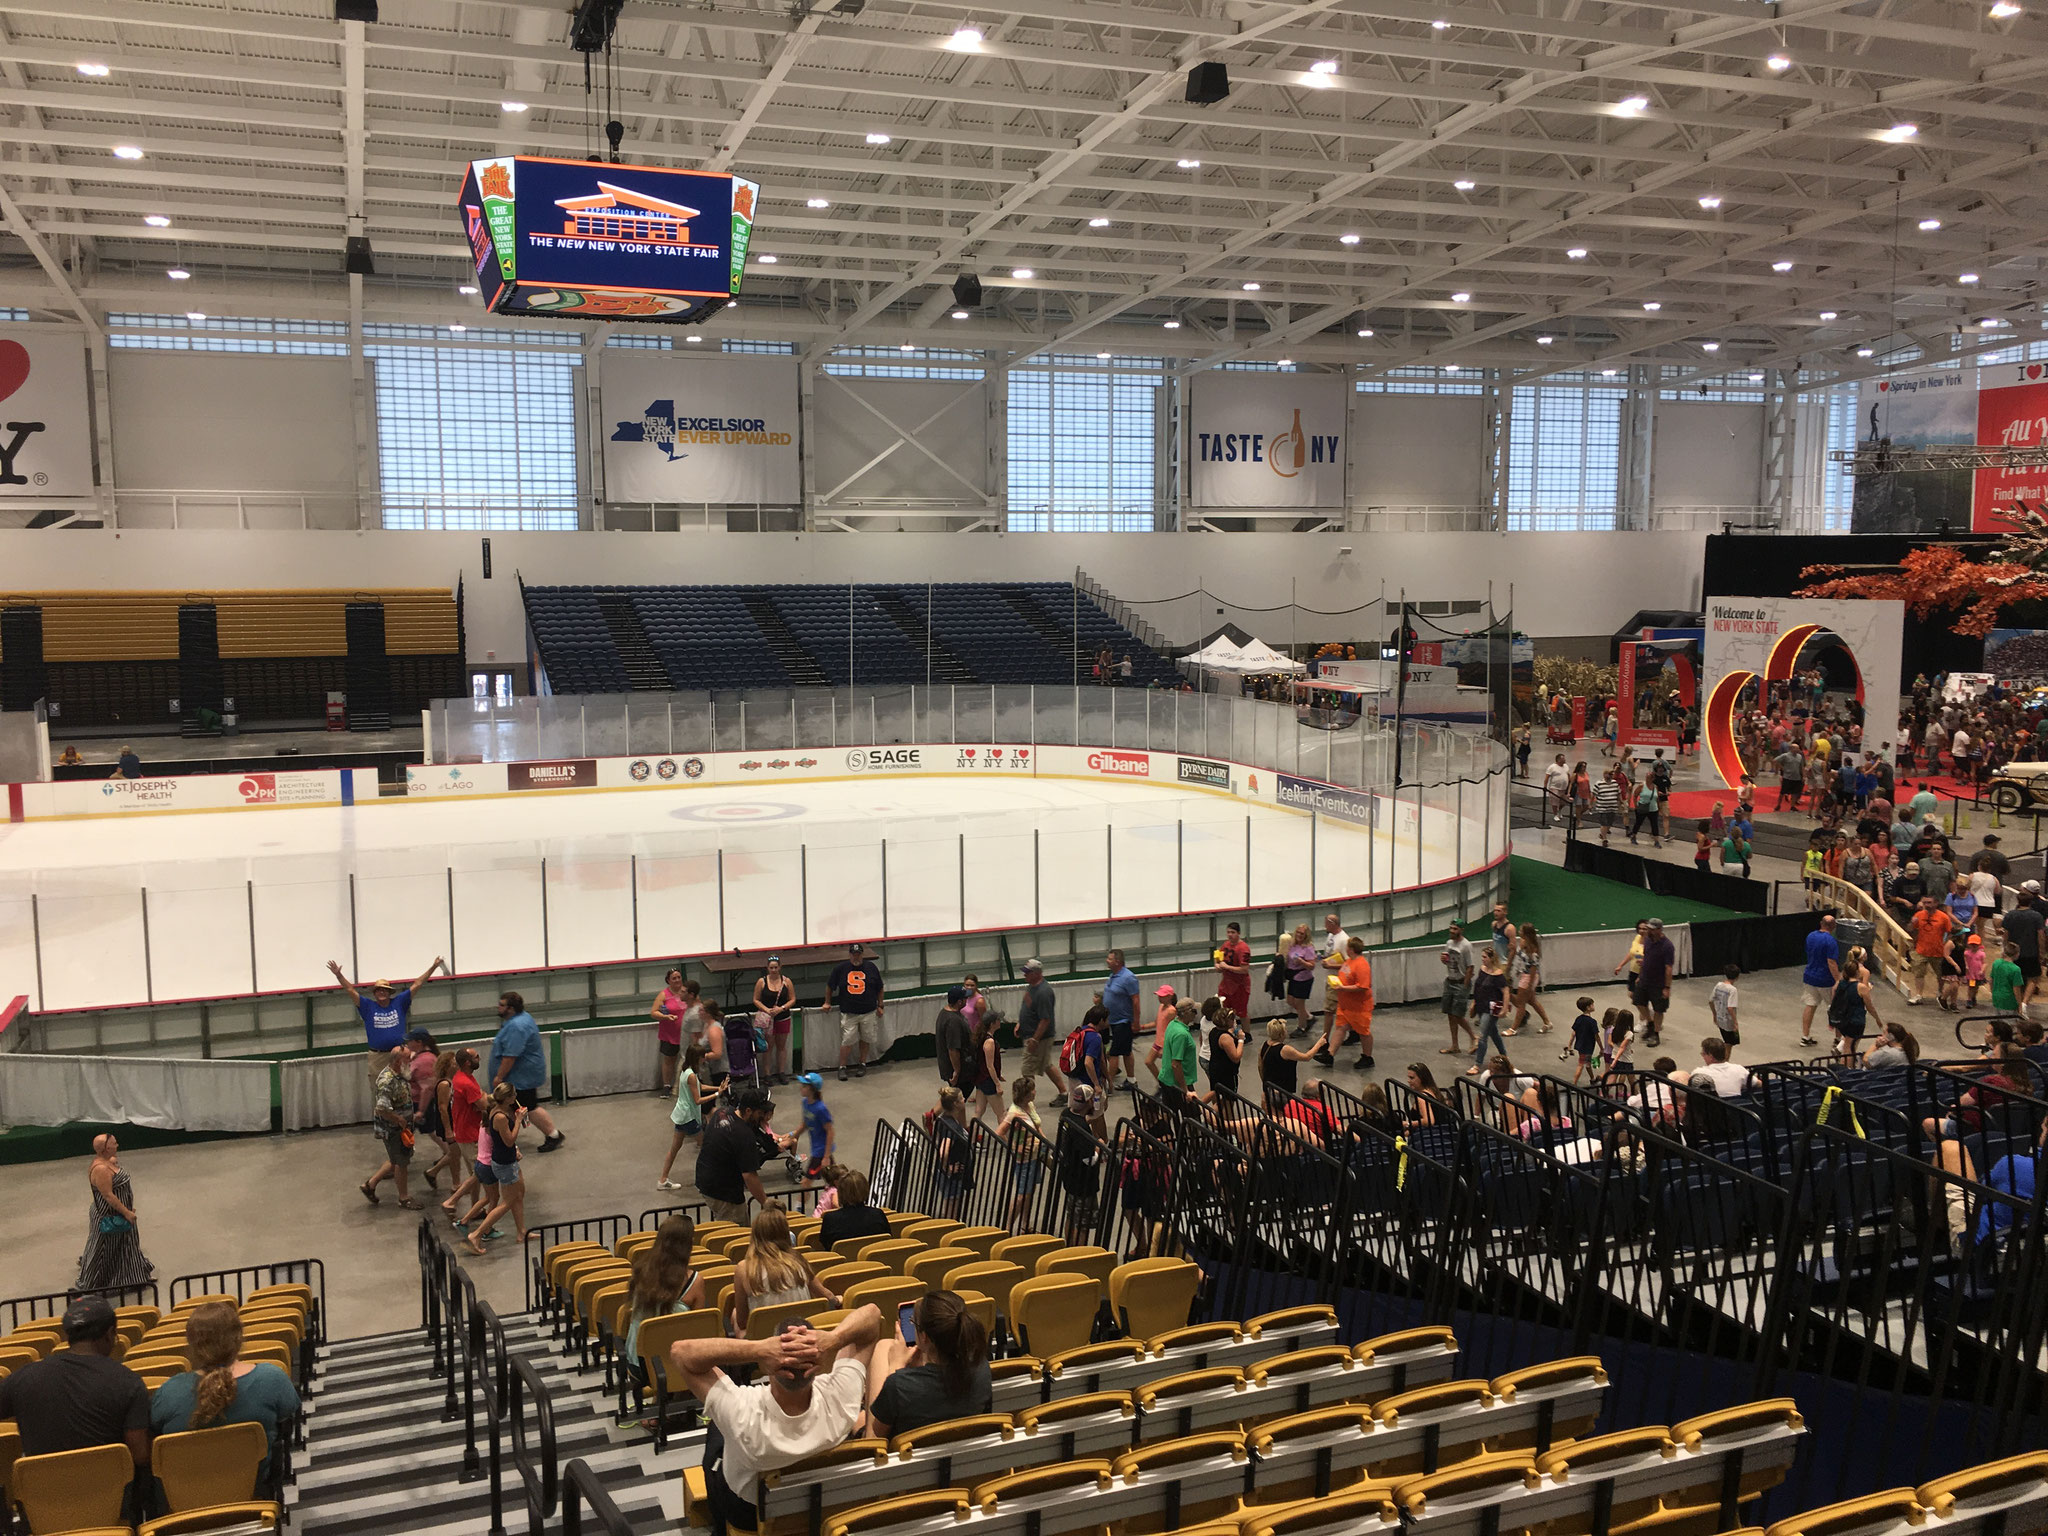 the new ice rink